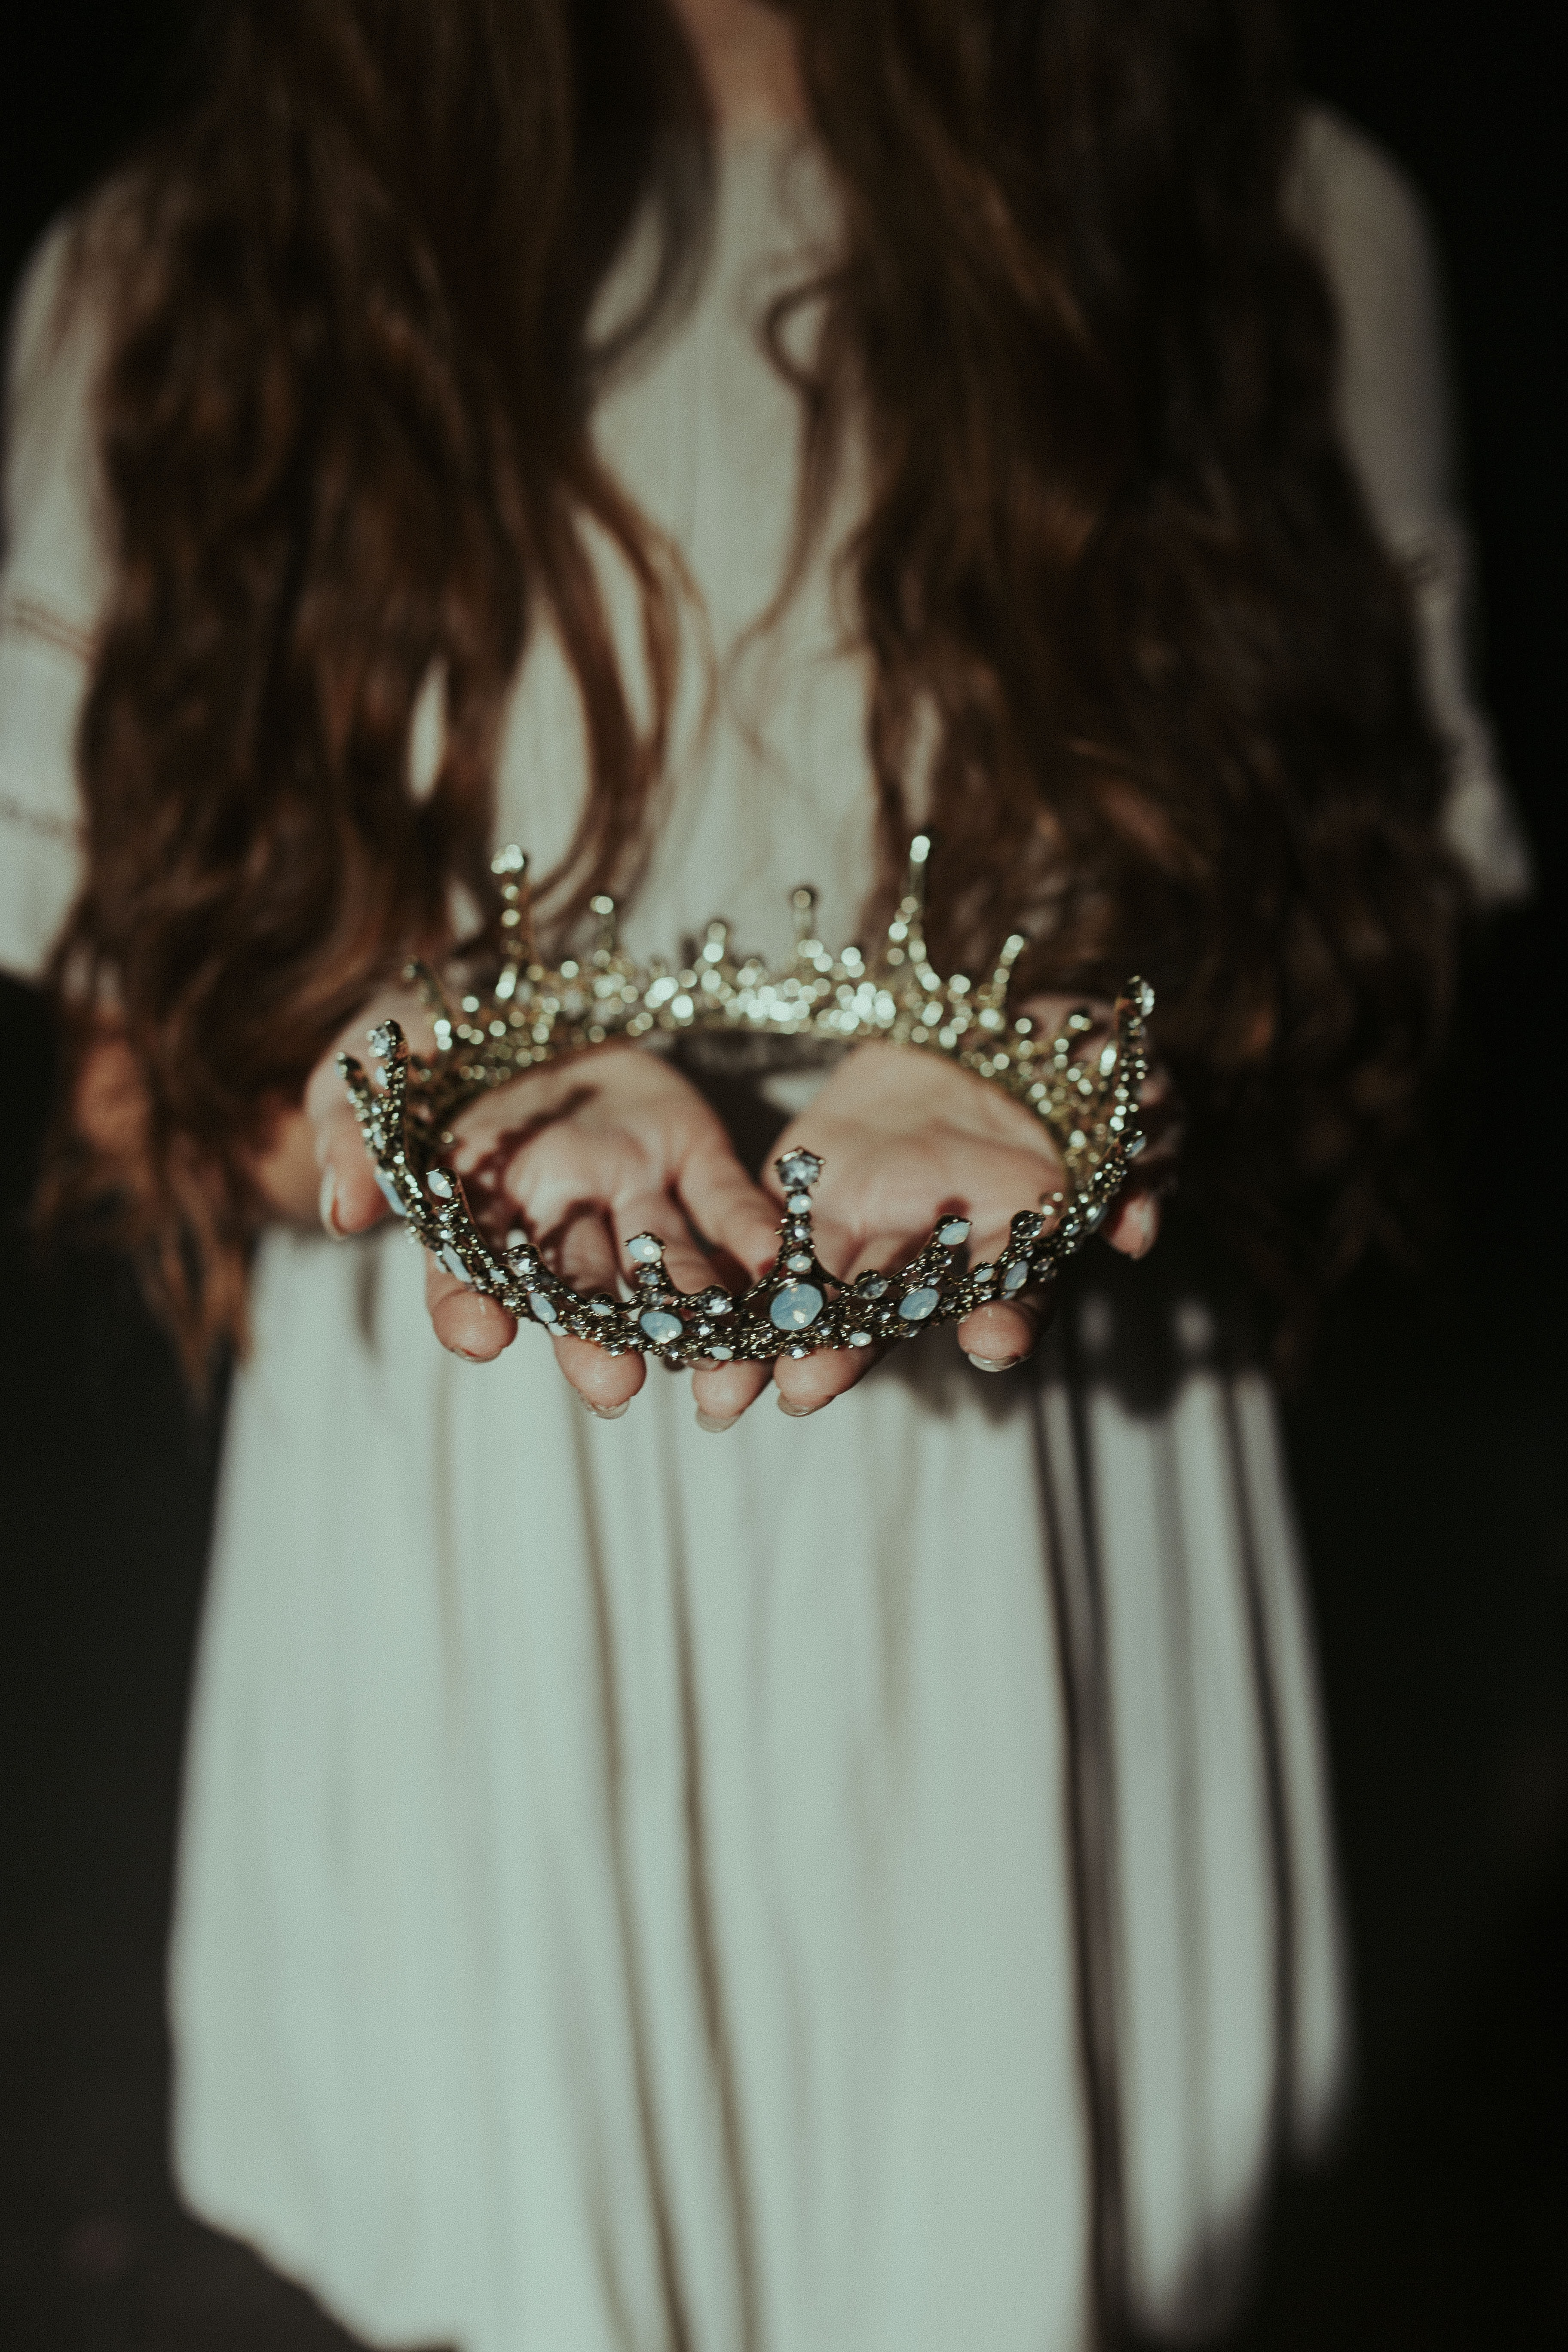 woman holding silver-colored crown